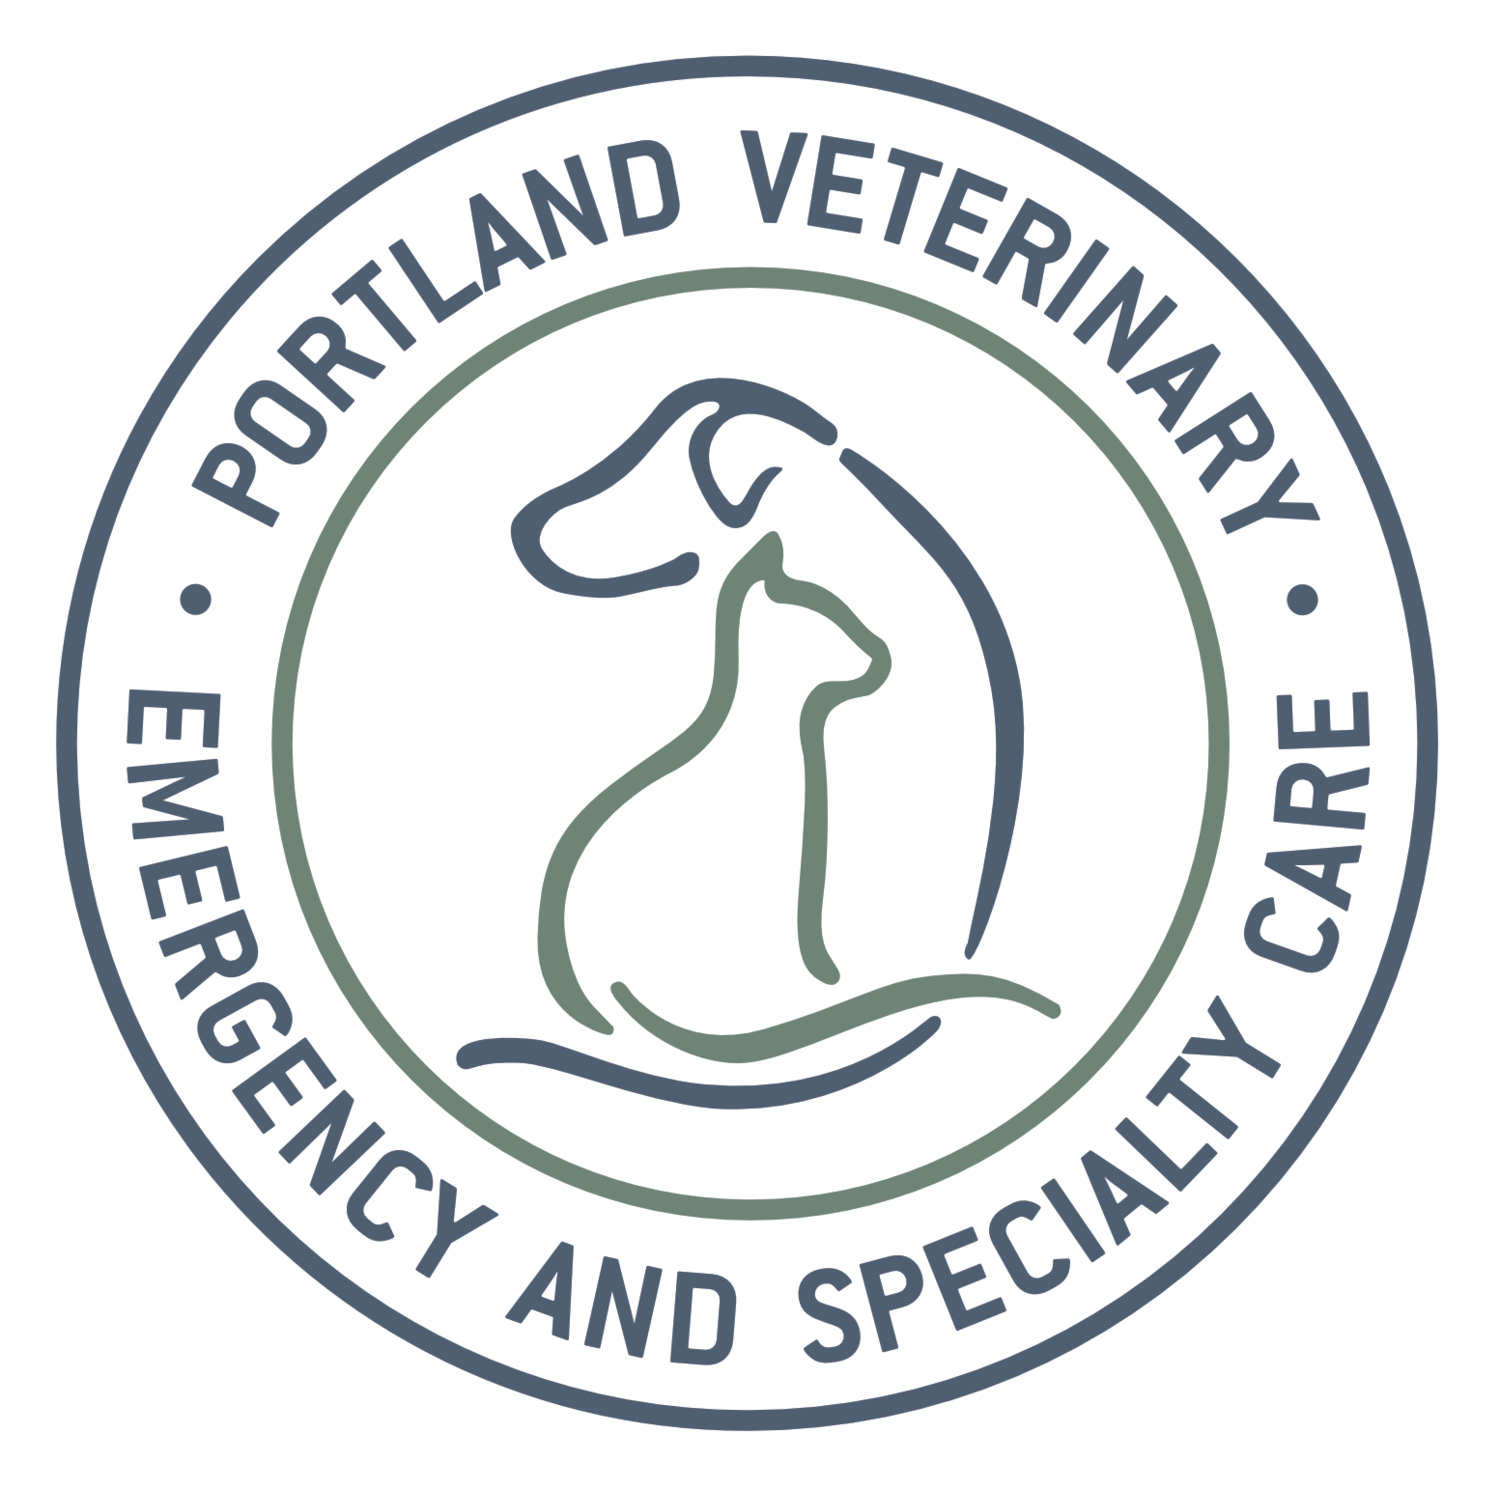 Portland Veterinary Emergency and Specialty Care